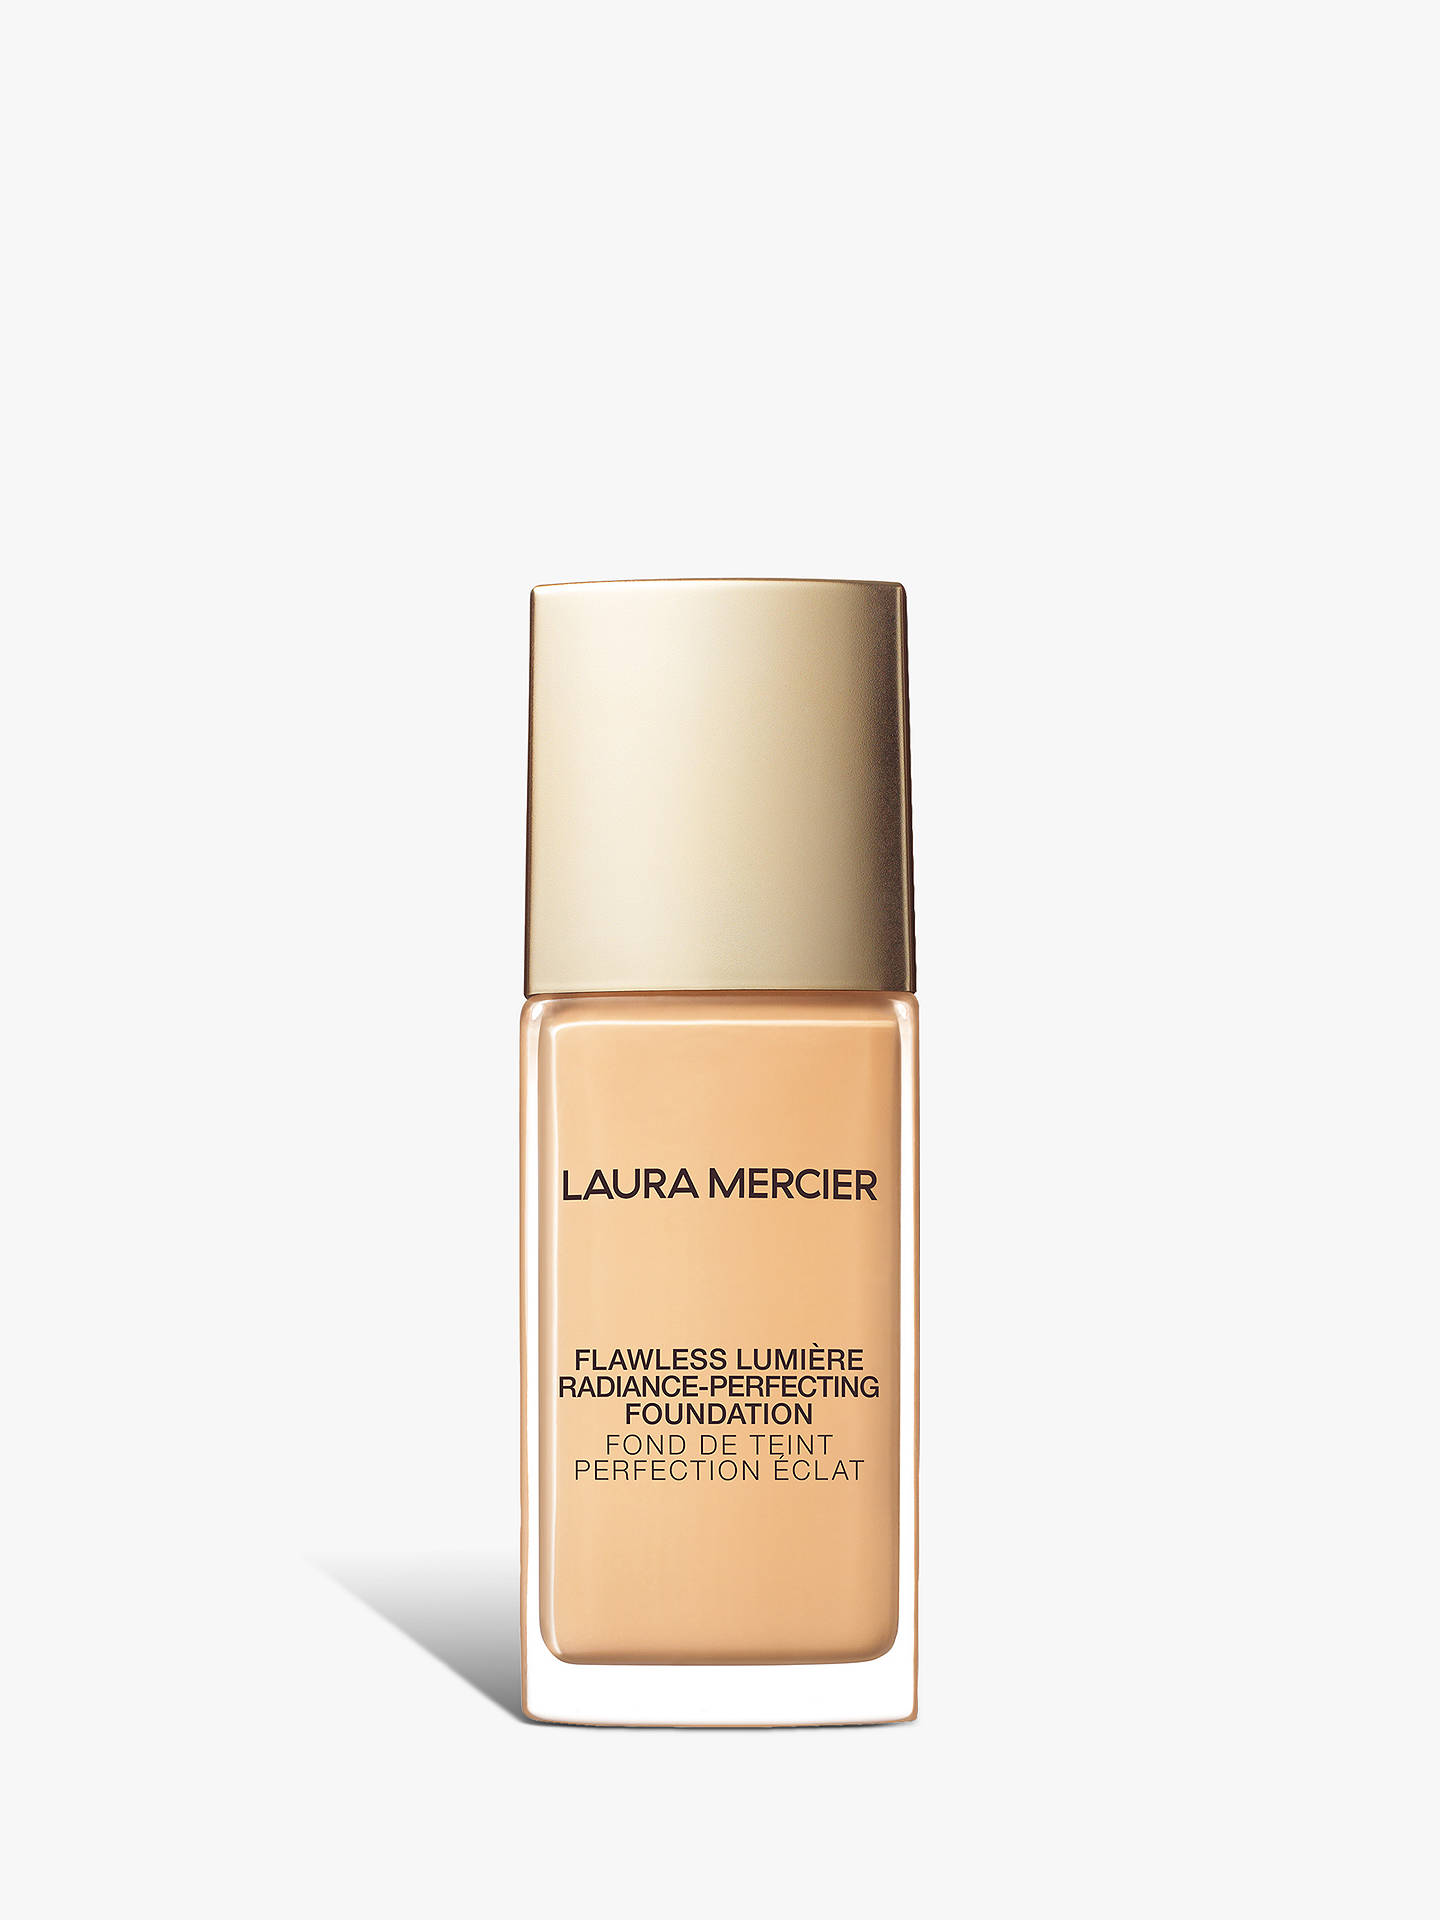 Buy Laura Mercier Flawless Lumière Radiance-Perfecting Foundation, 1C1 Shell Online at johnlewis.com